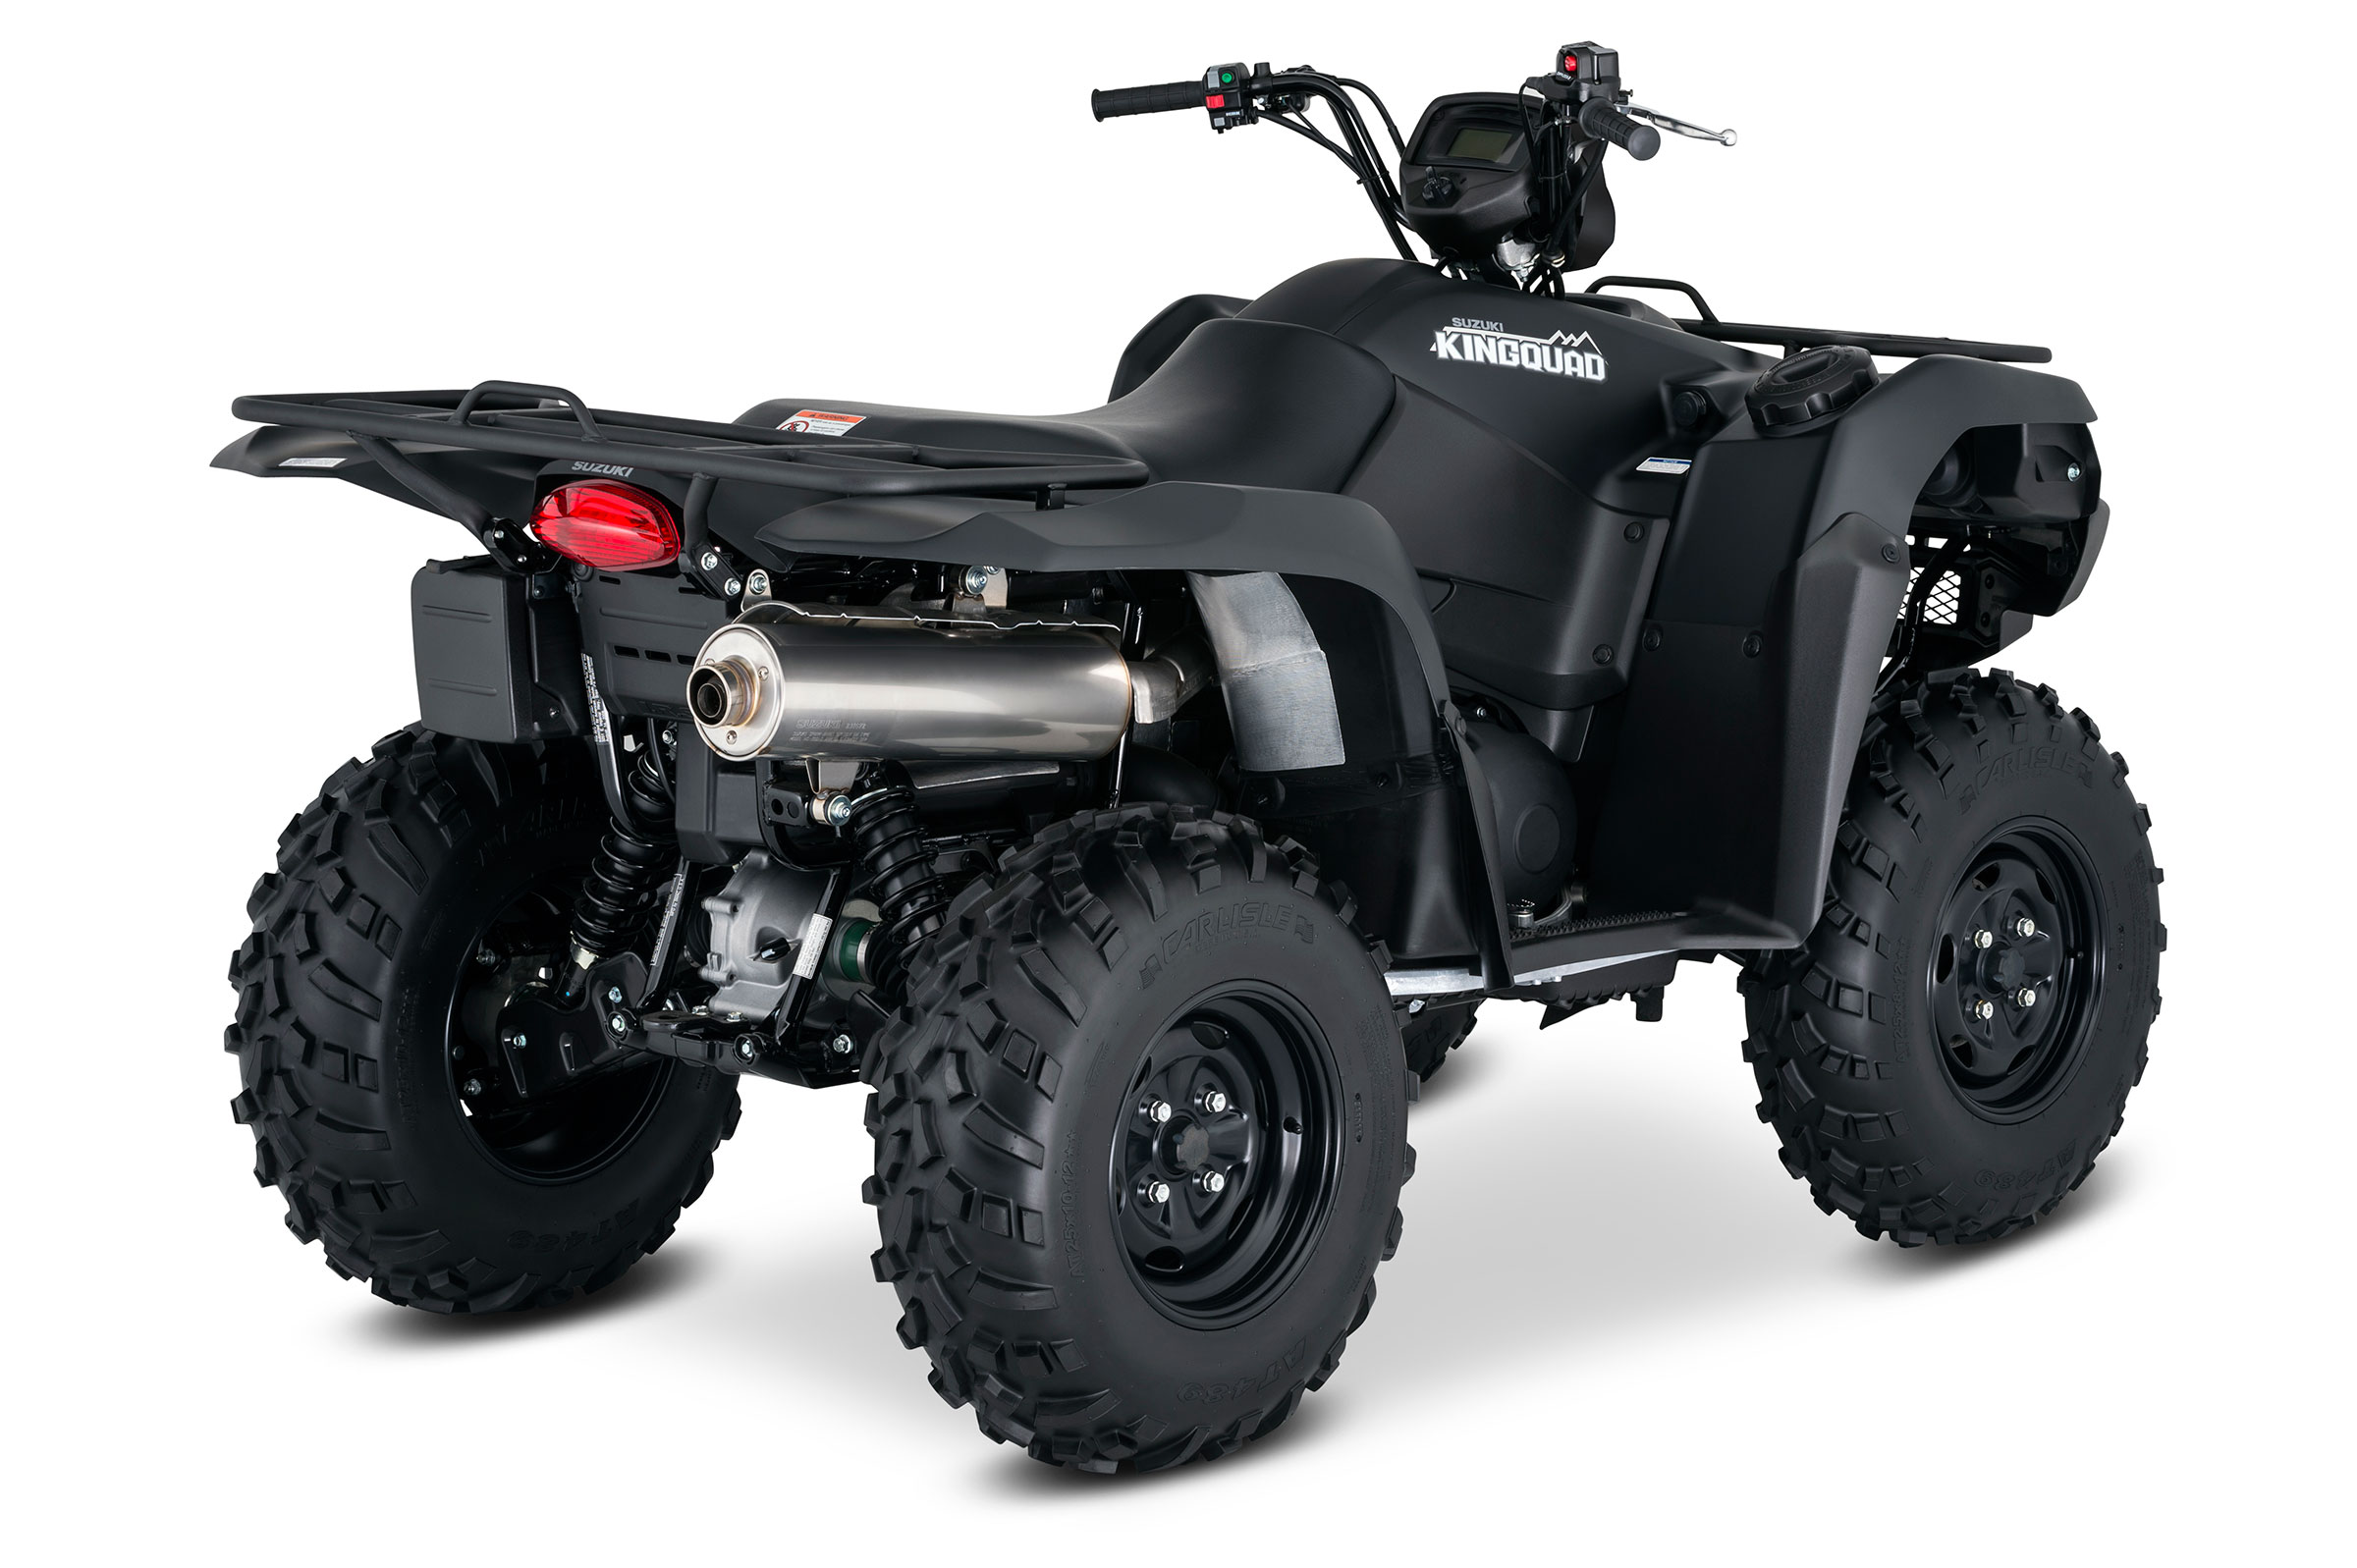 2018 suzuki kingquad 750axi. perfect 750axi 2018 suzuki kingquad 750axi power steering special edition in miami florida to suzuki kingquad 750axi u